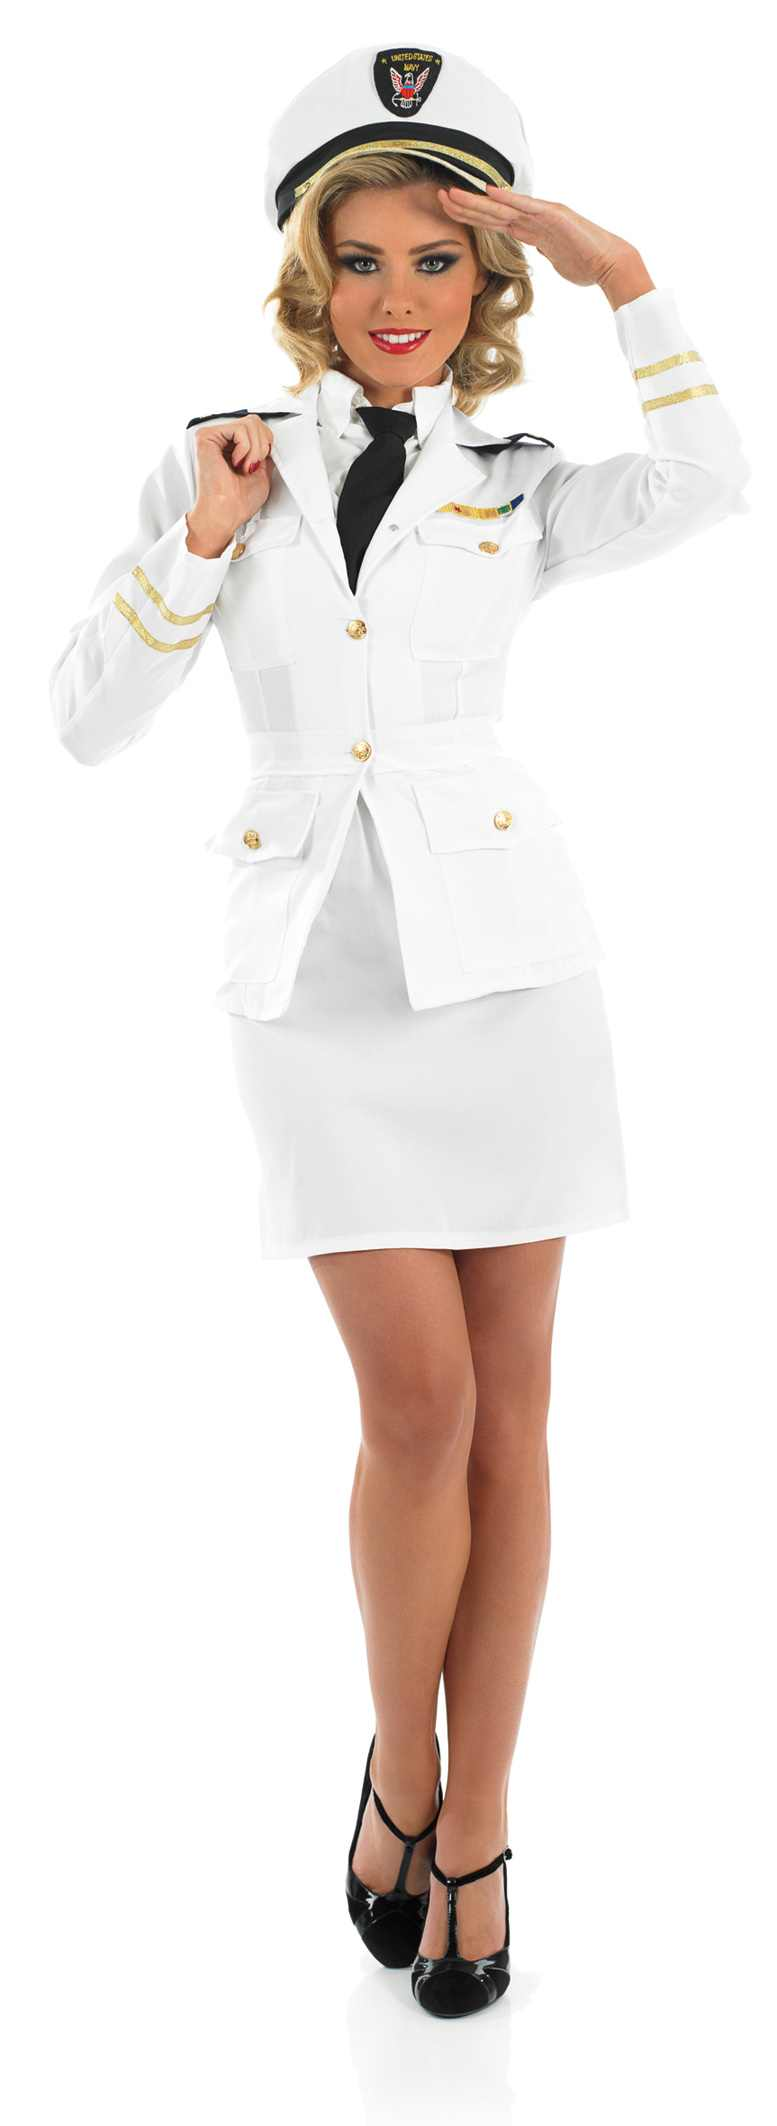 Ladies-40S-Lady-Naval-Officer-Costume-for-WWII-War-Time-Fancy-Dress-Up-Outfits